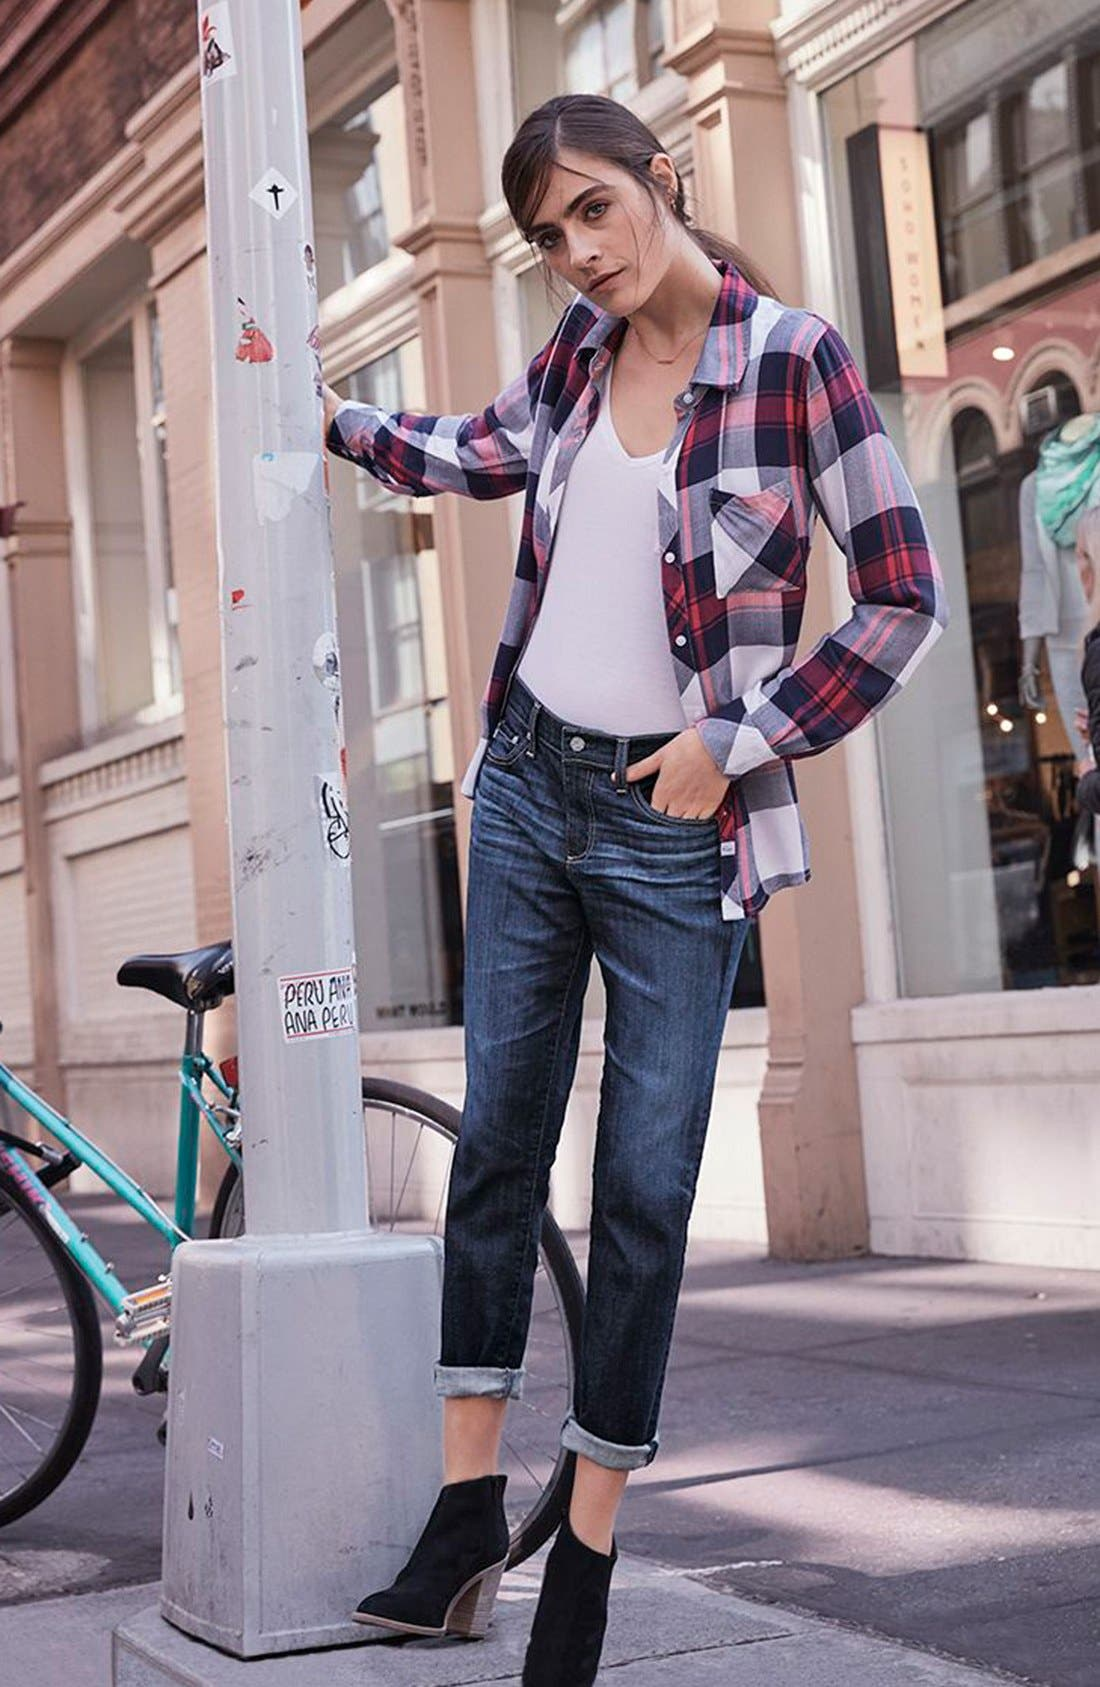 Rails Shirt, PAIGE Tee & AG Jeans Outfit with Accessories